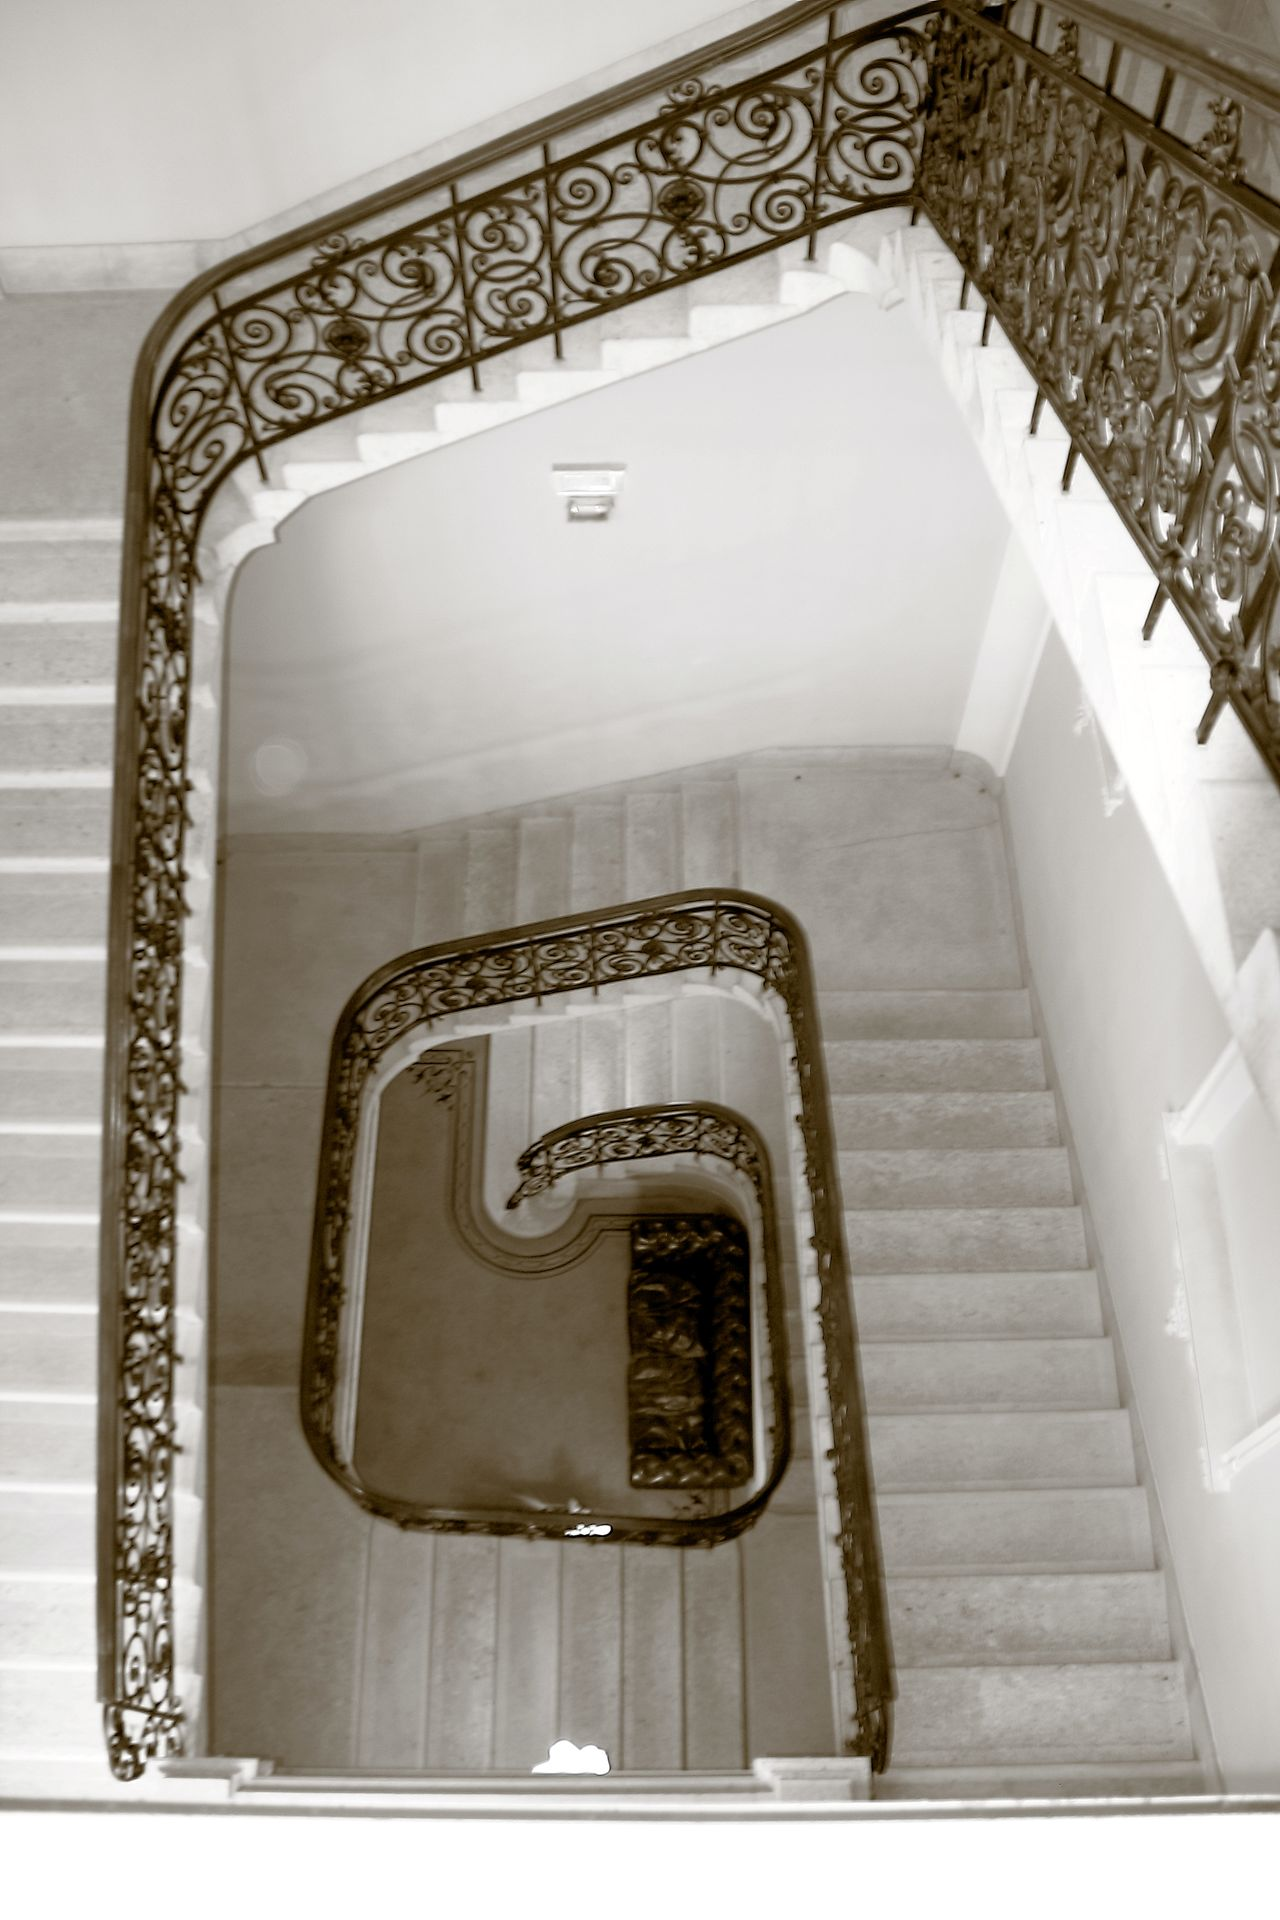 Hotel back stairwell Architecture Architecture B&w B&w Photography Bannister Budapest Budapest, Hungary Built Structure Design Full Frame High Angle View Indoors  Marble Marble Floors Marble Staircase Marble Stairs No People Railing Sepia Sepia Photography Spiral Spiral Staircase Staircase Steps Steps And Staircases